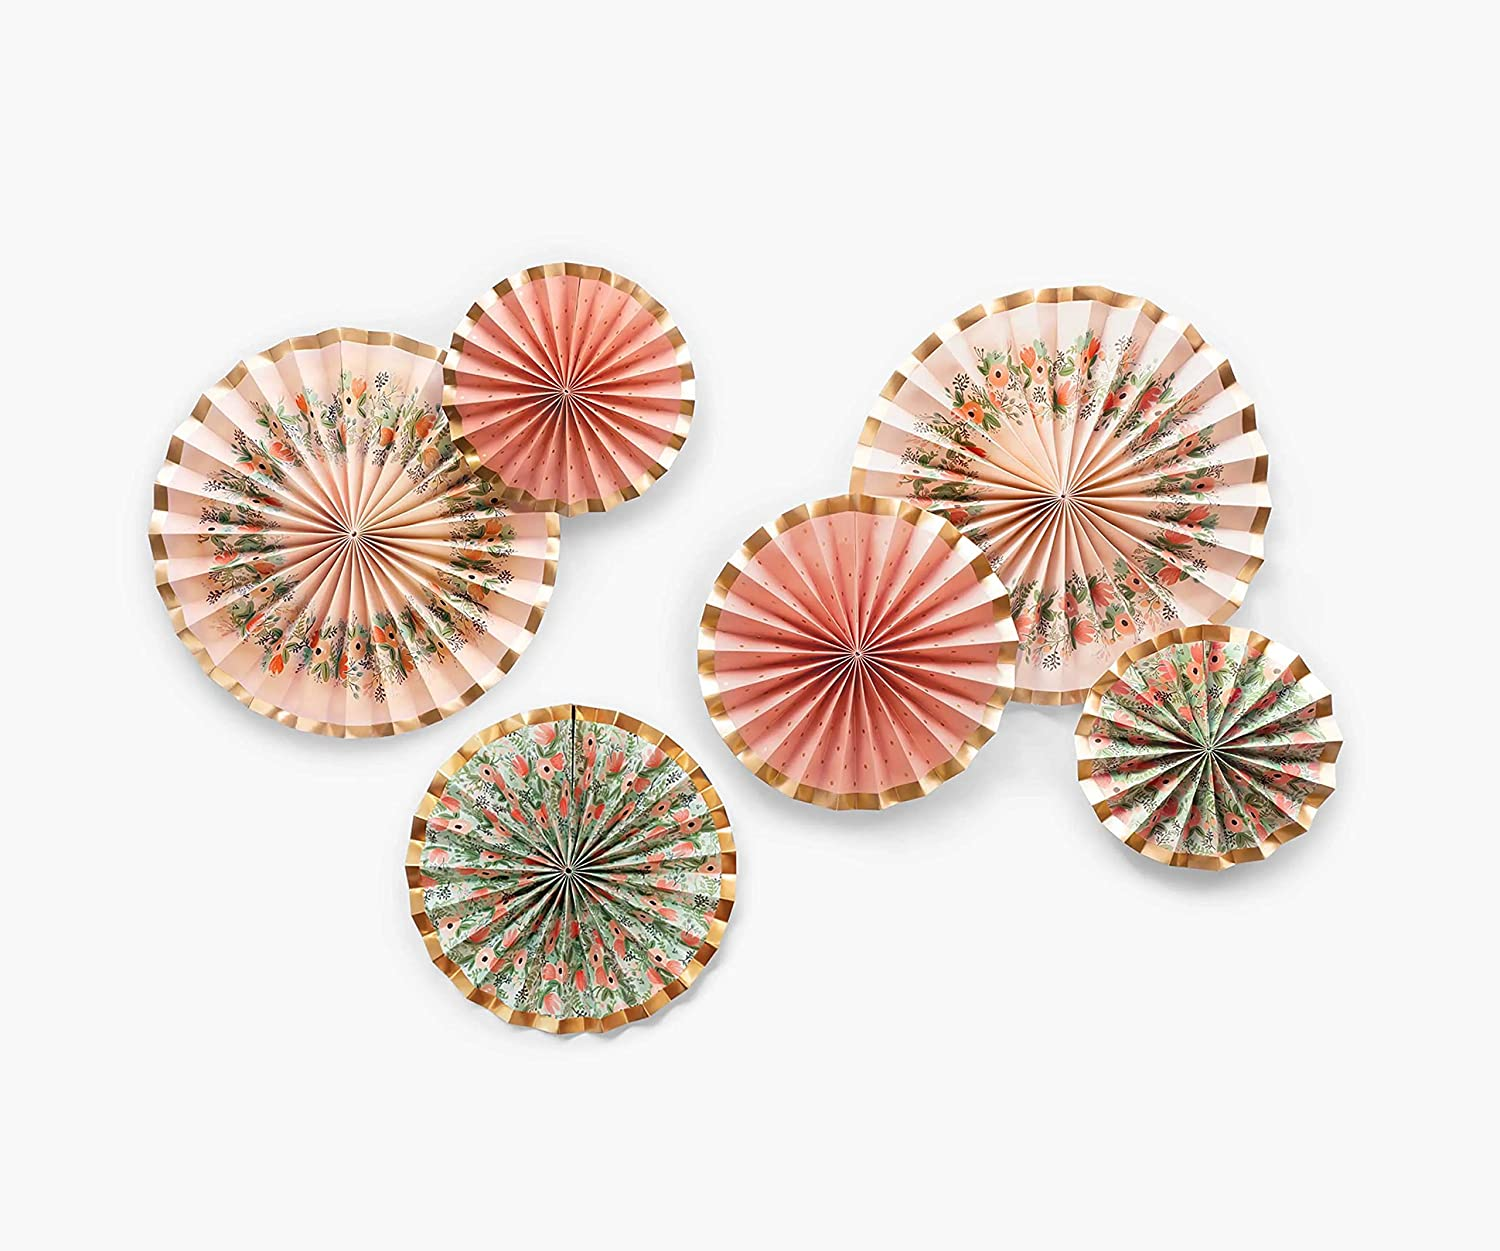 RIFLE PAPER CO. Wildflowers Fans, Durable Decorative Paper Fans, Set of 6, Different Sizes, Includes Adhesive Strips, Paperclips, and String, Displays as Backdrop